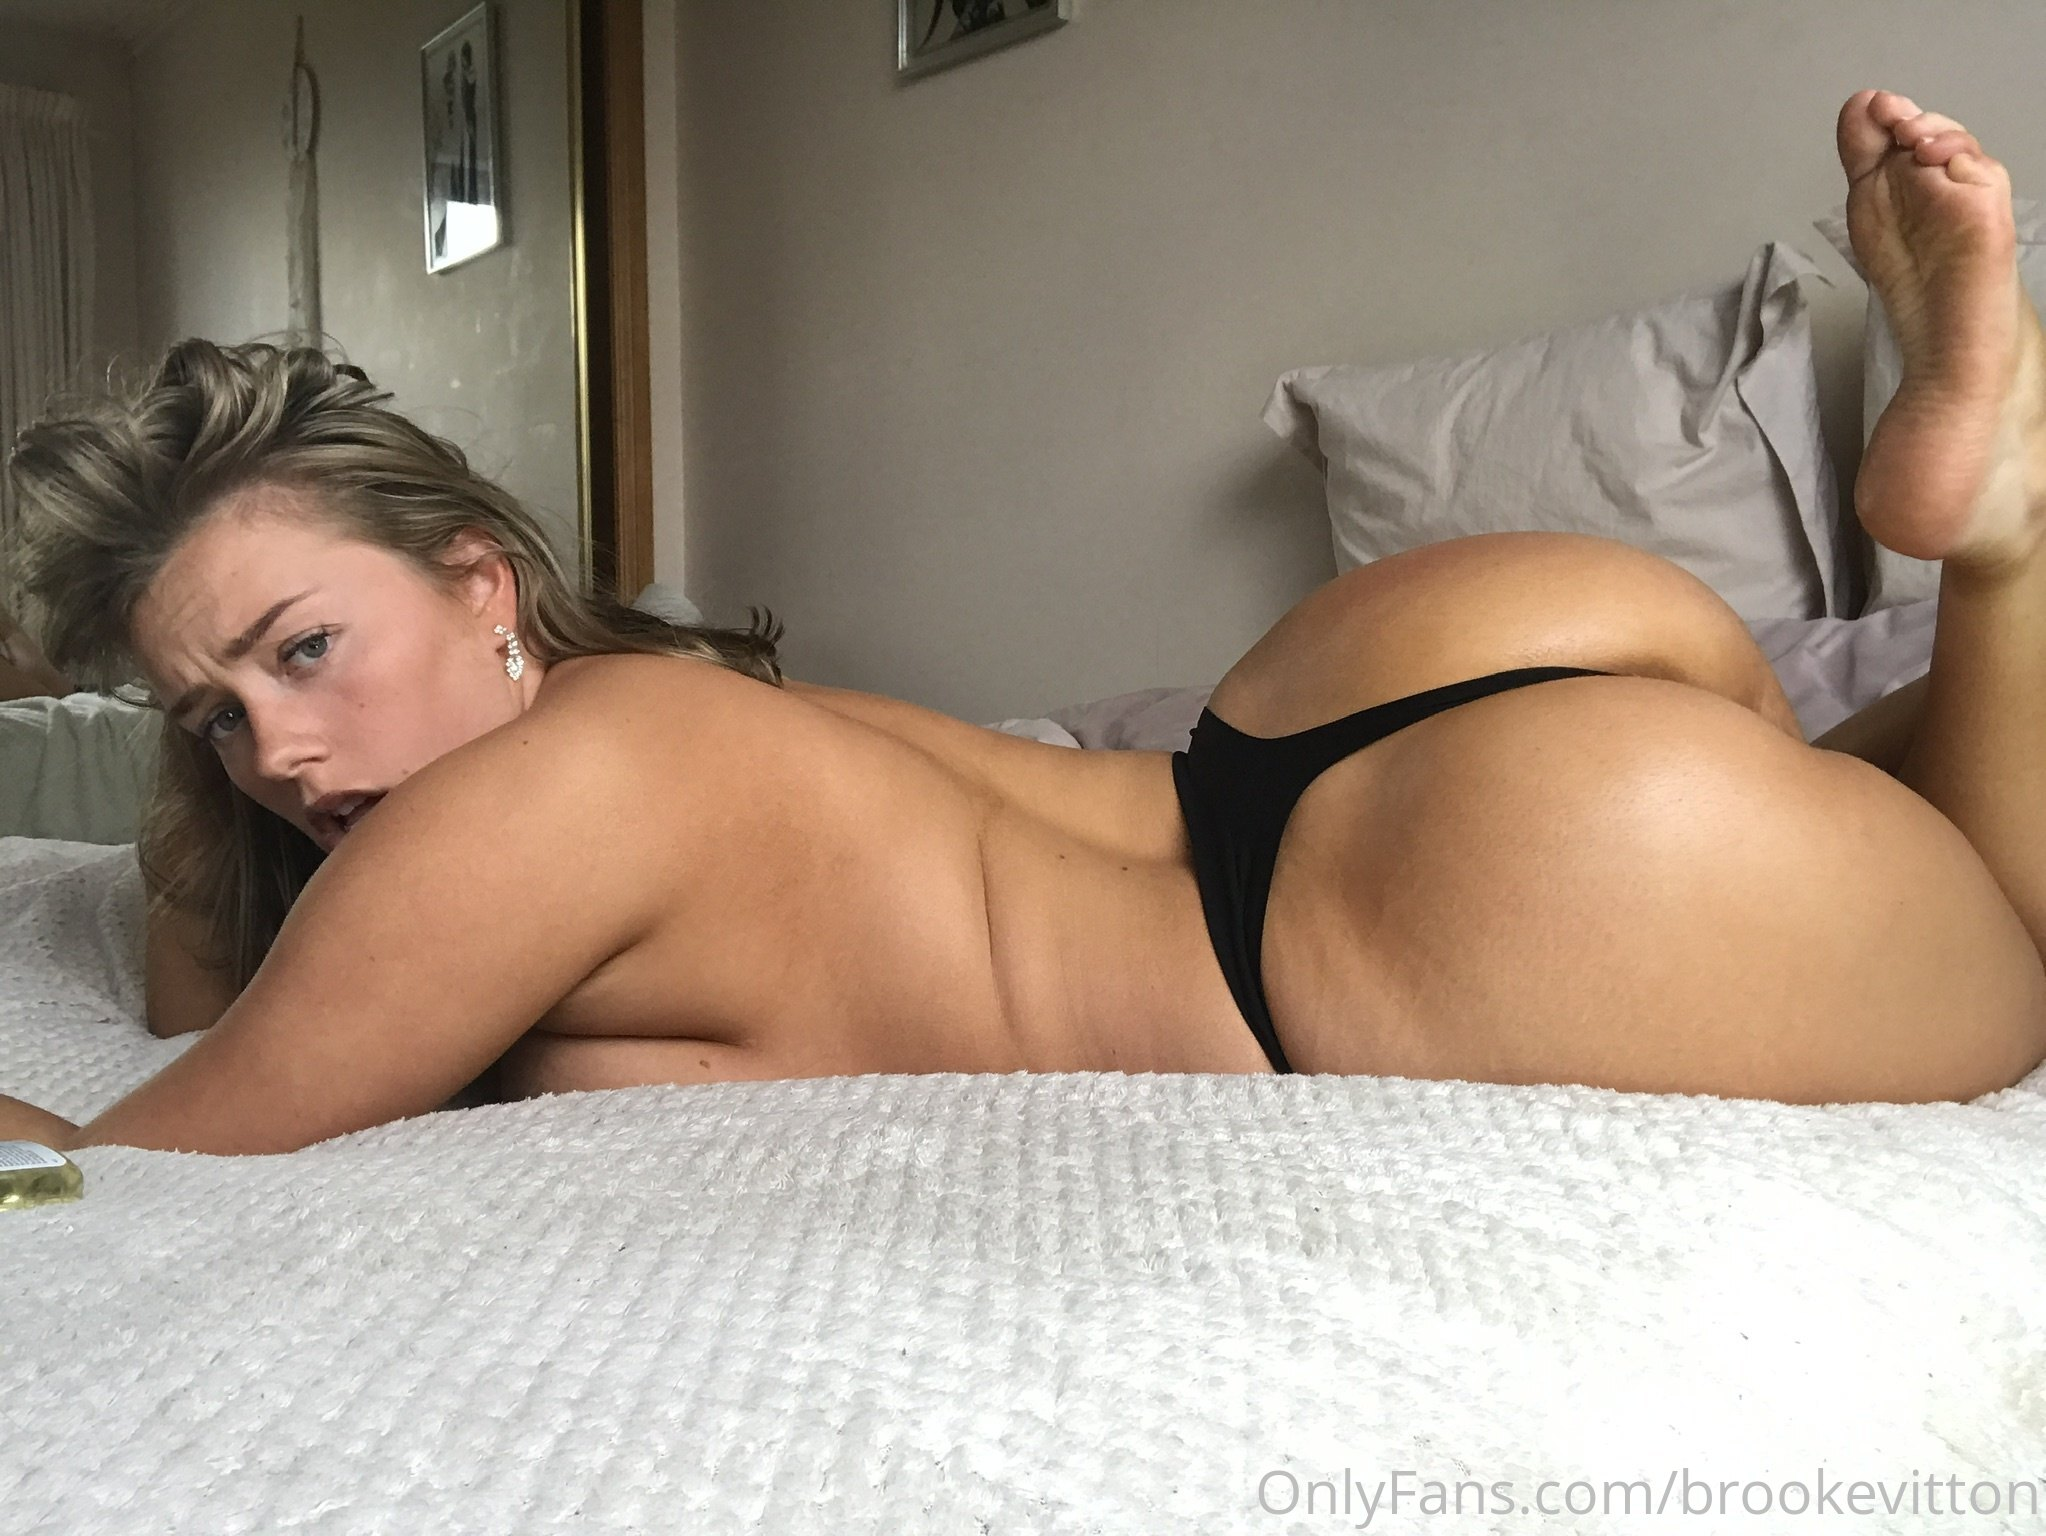 Avalon Hope Nude Onlyfans Collection Leak! Onlyfans @avalonhopeofficial (brookevitton) 0002